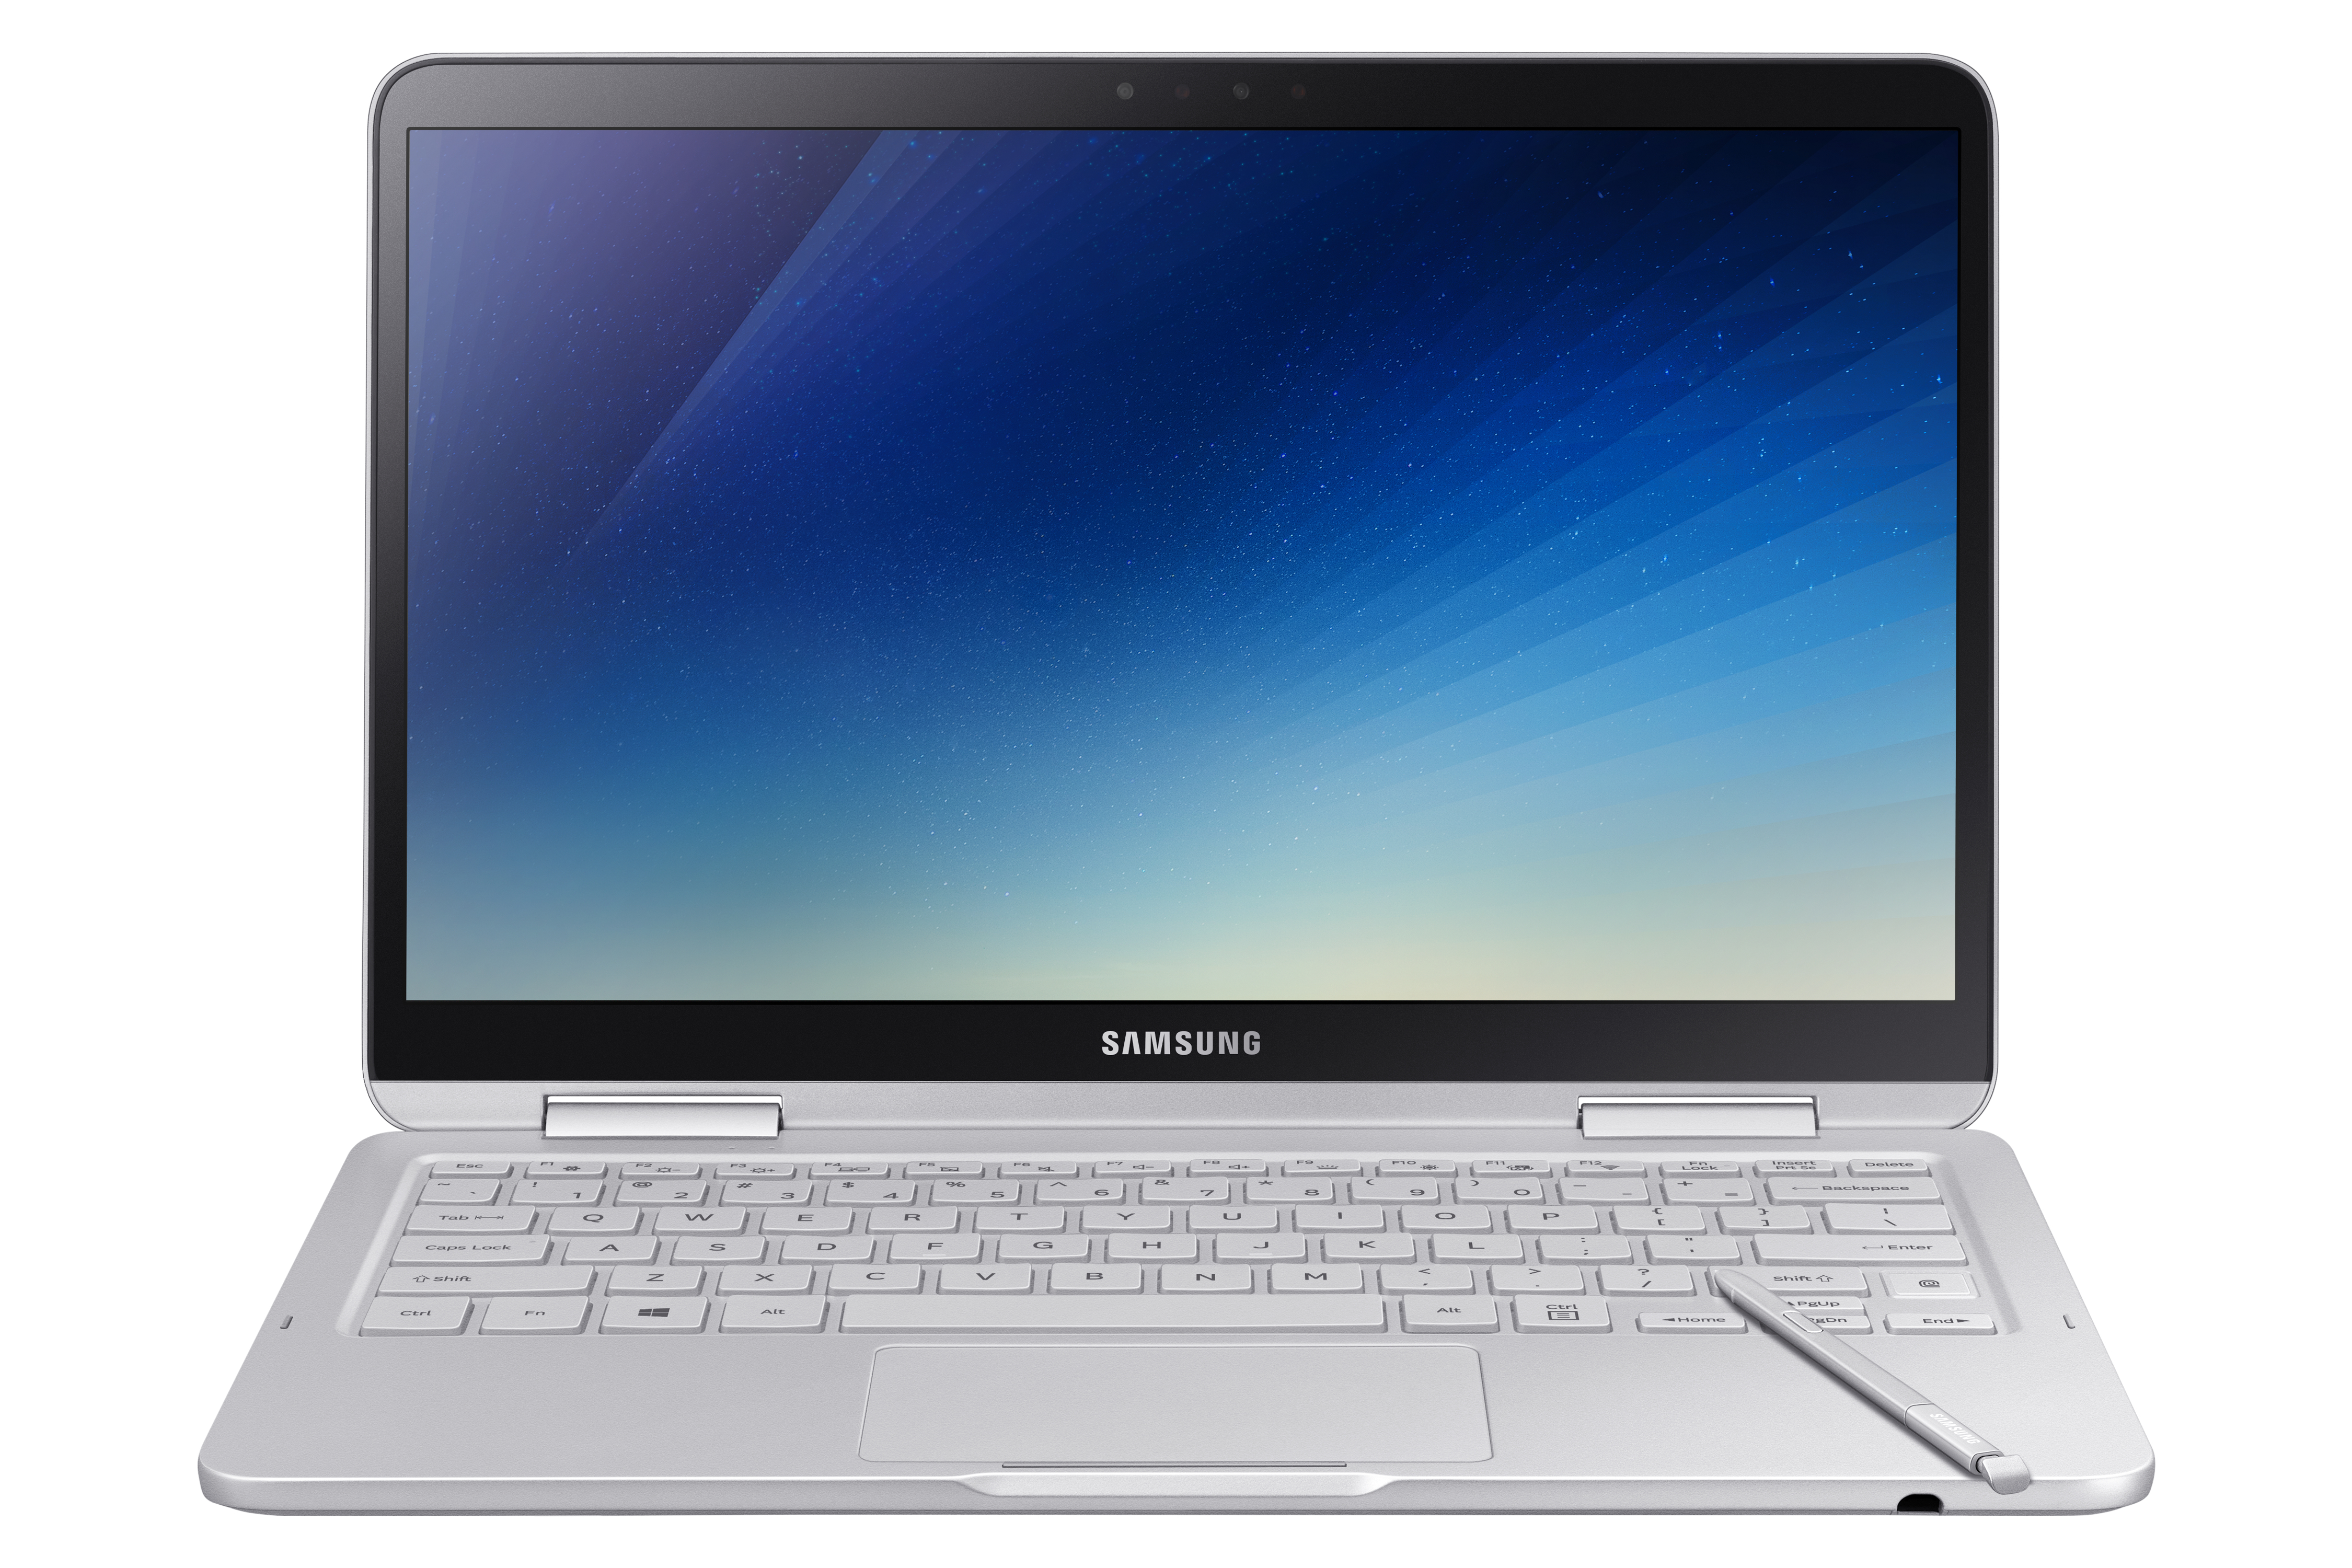 Upgrade Your Digital Lifestyle with the New Samsung Notebook 9 Pen